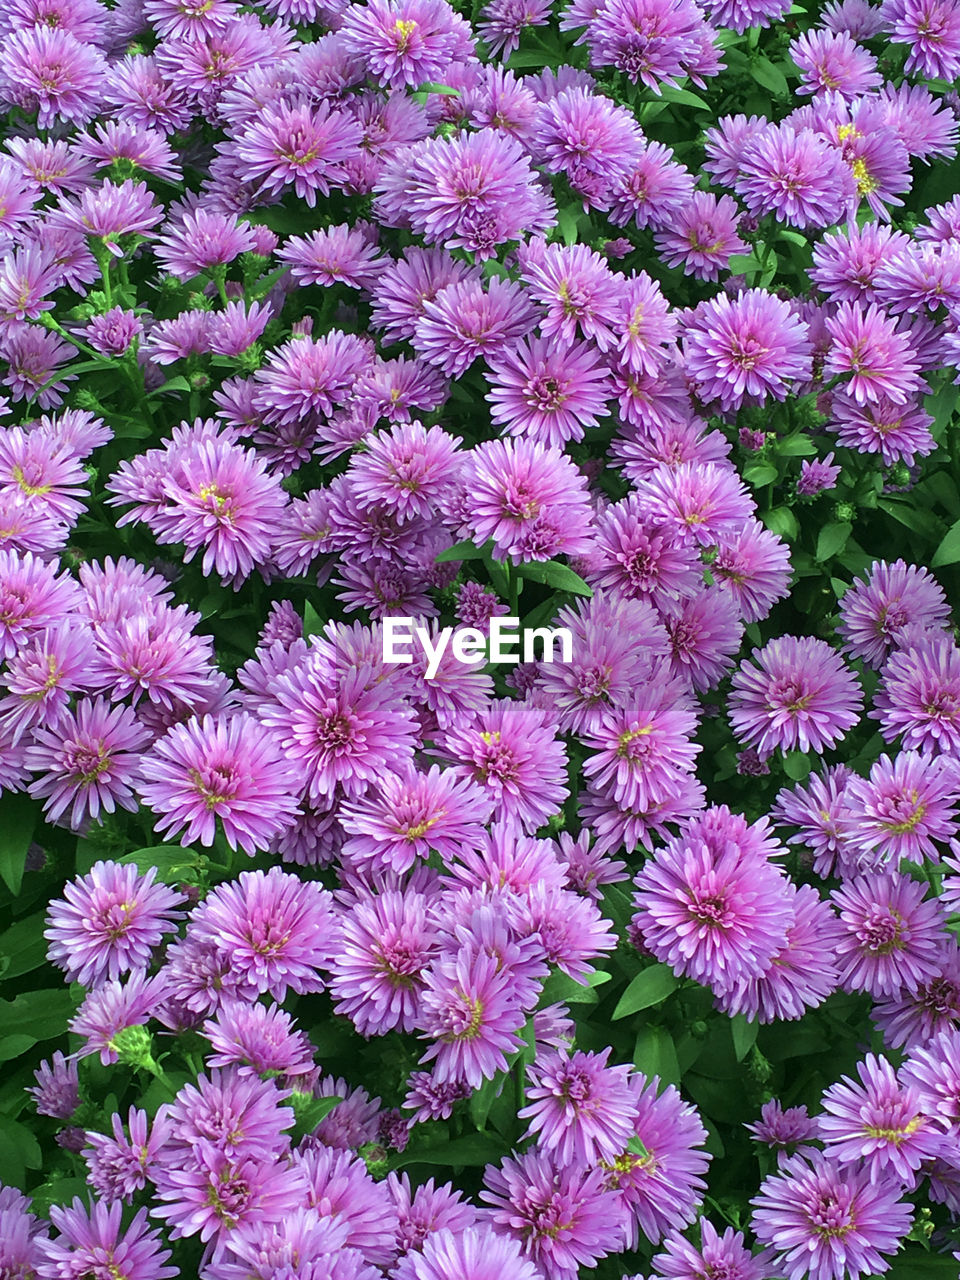 flower, petal, fragility, backgrounds, beauty in nature, freshness, flower head, purple, full frame, no people, growth, nature, high angle view, plant, blooming, pink color, day, abundance, outdoors, osteospermum, close-up